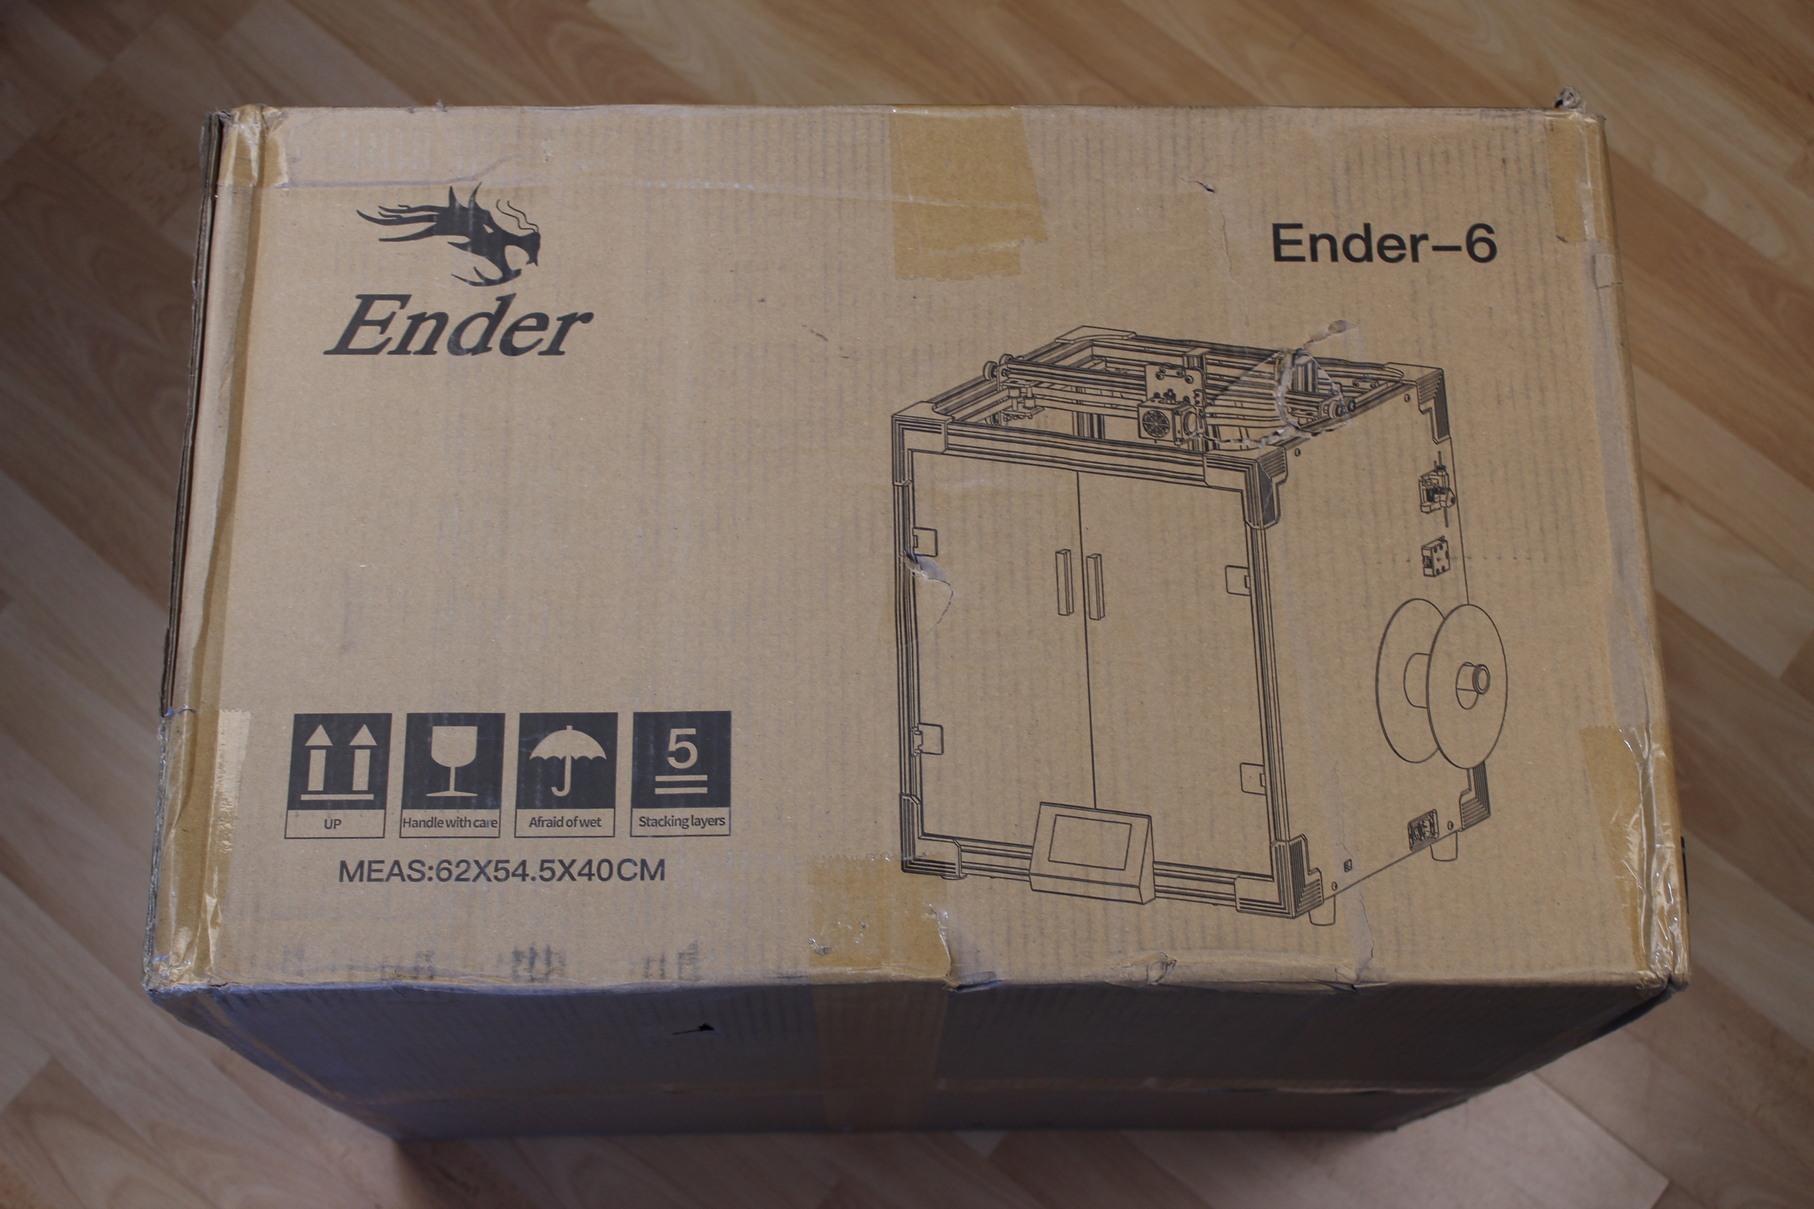 Creality-Ender-6-Review-Packaging-2